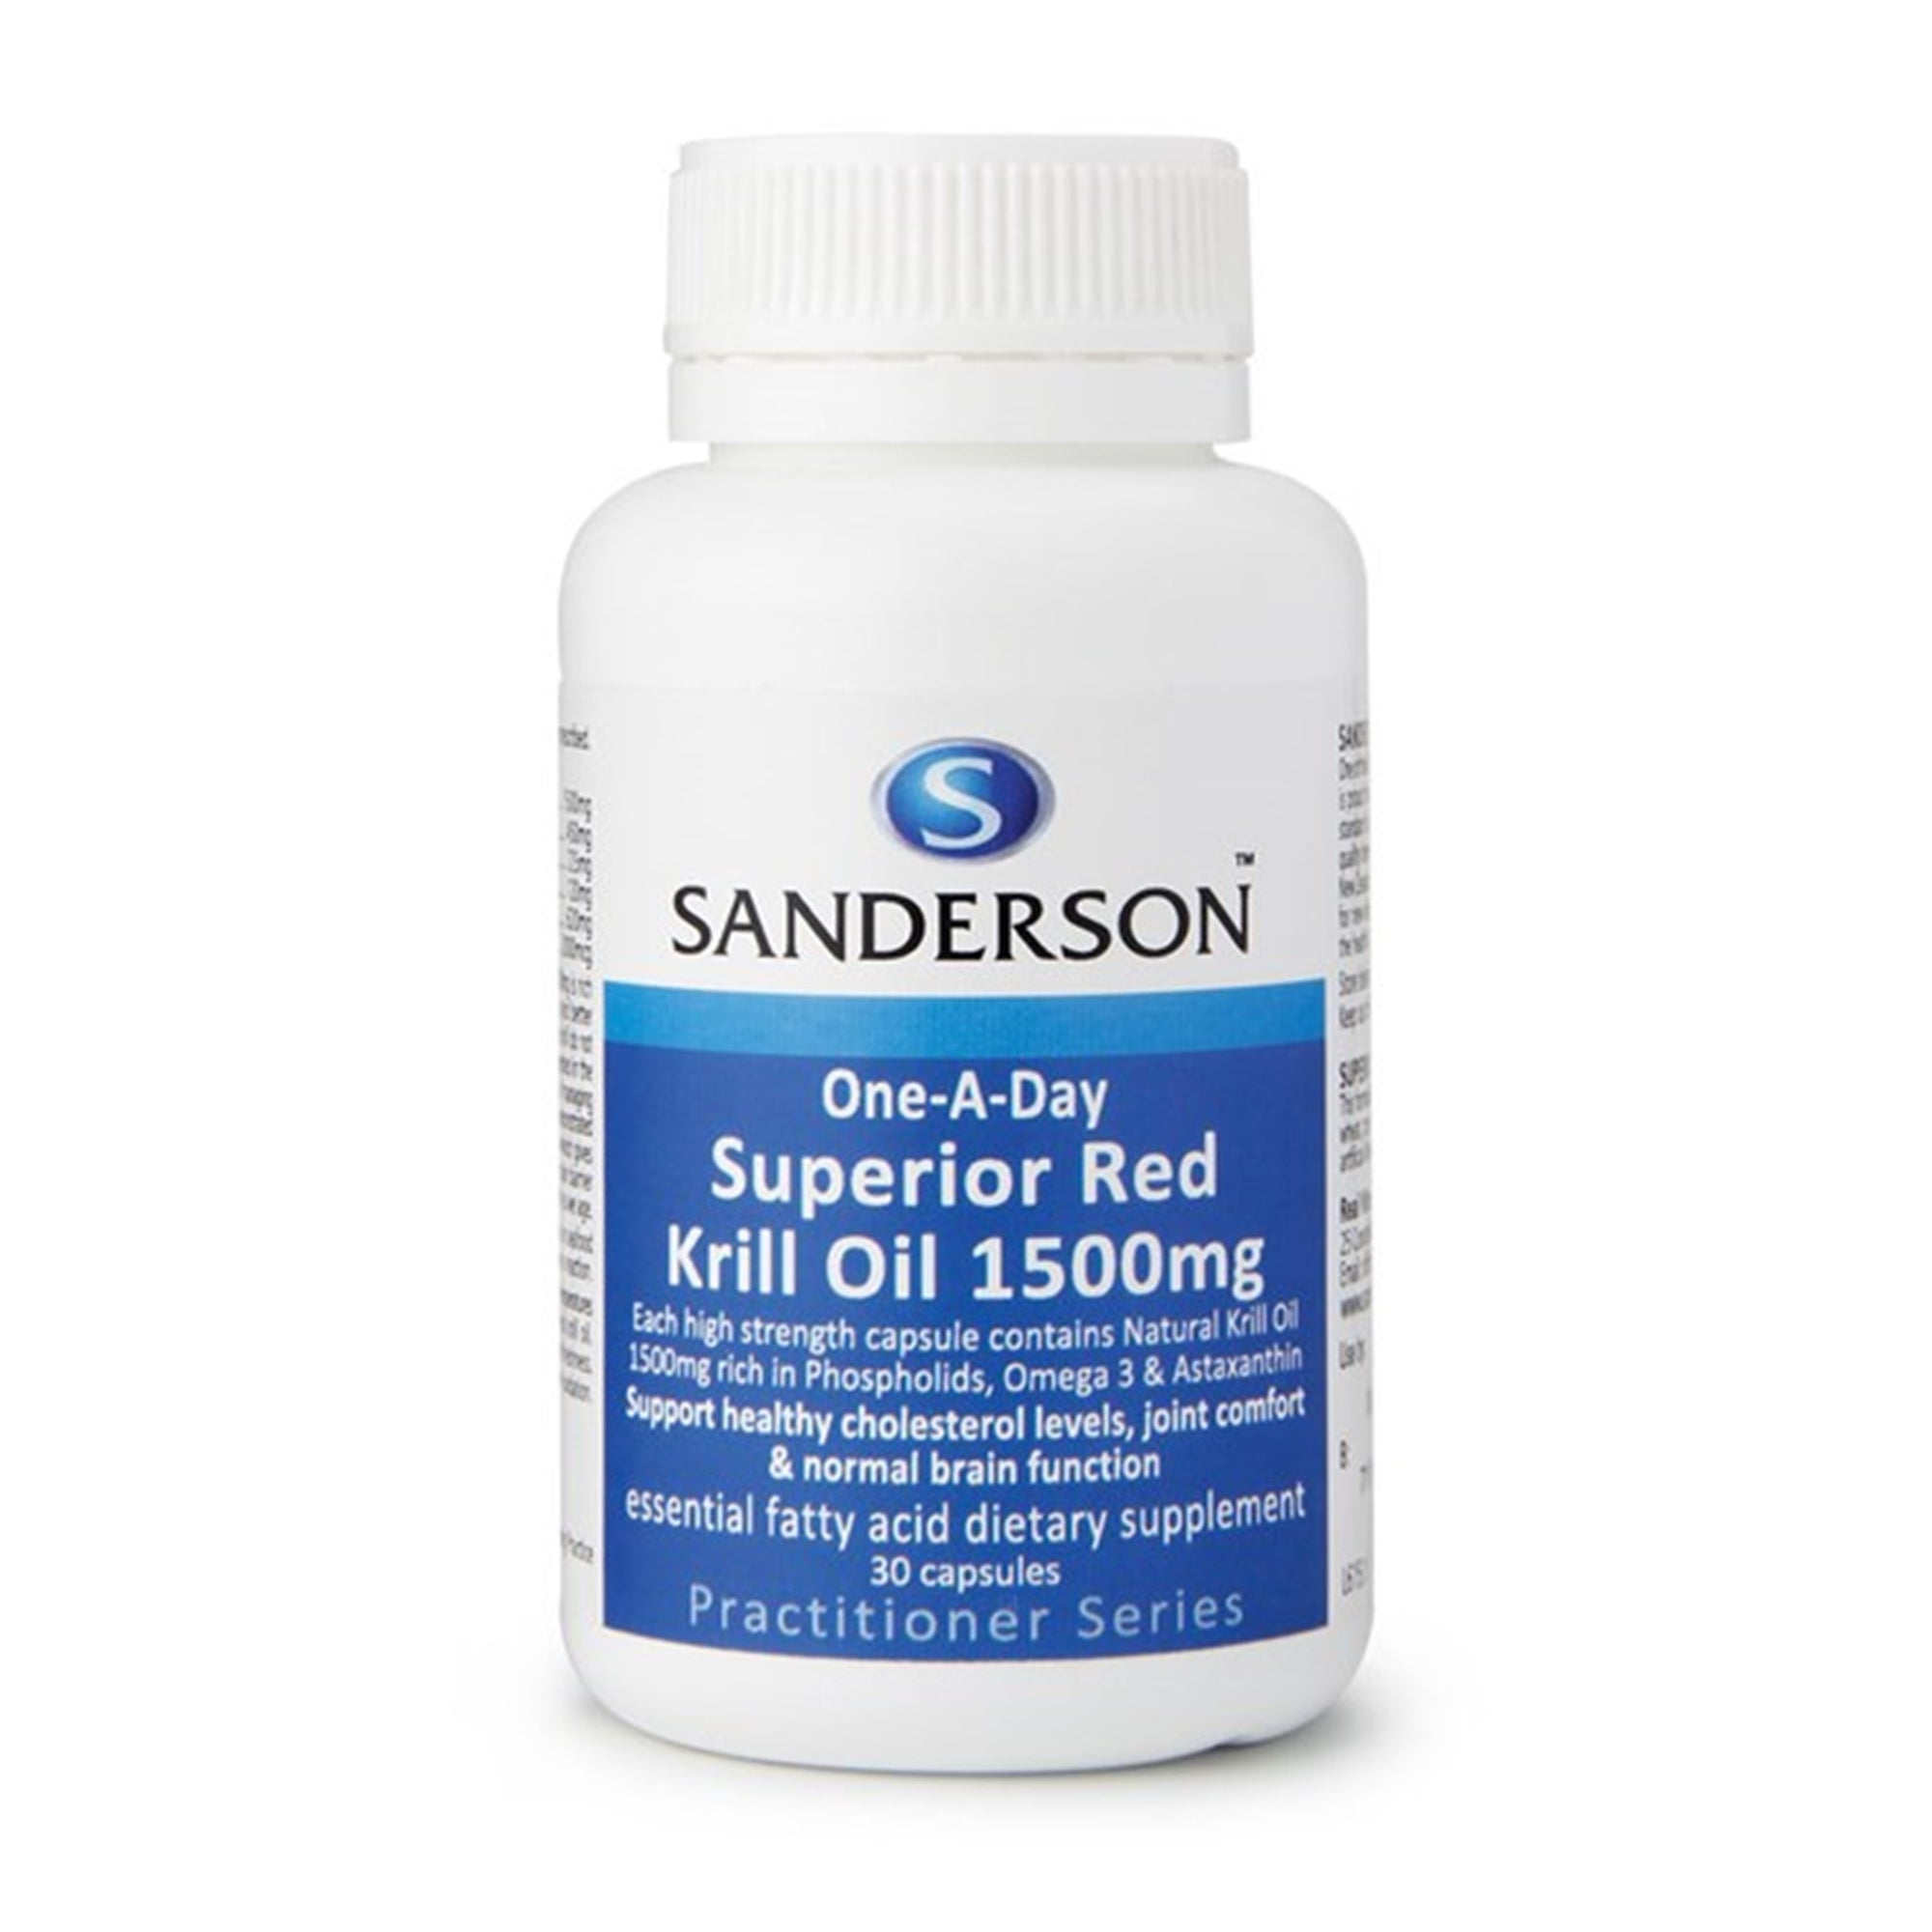 Sanderson 1-A-Day Red Krill Oil 30 Caps